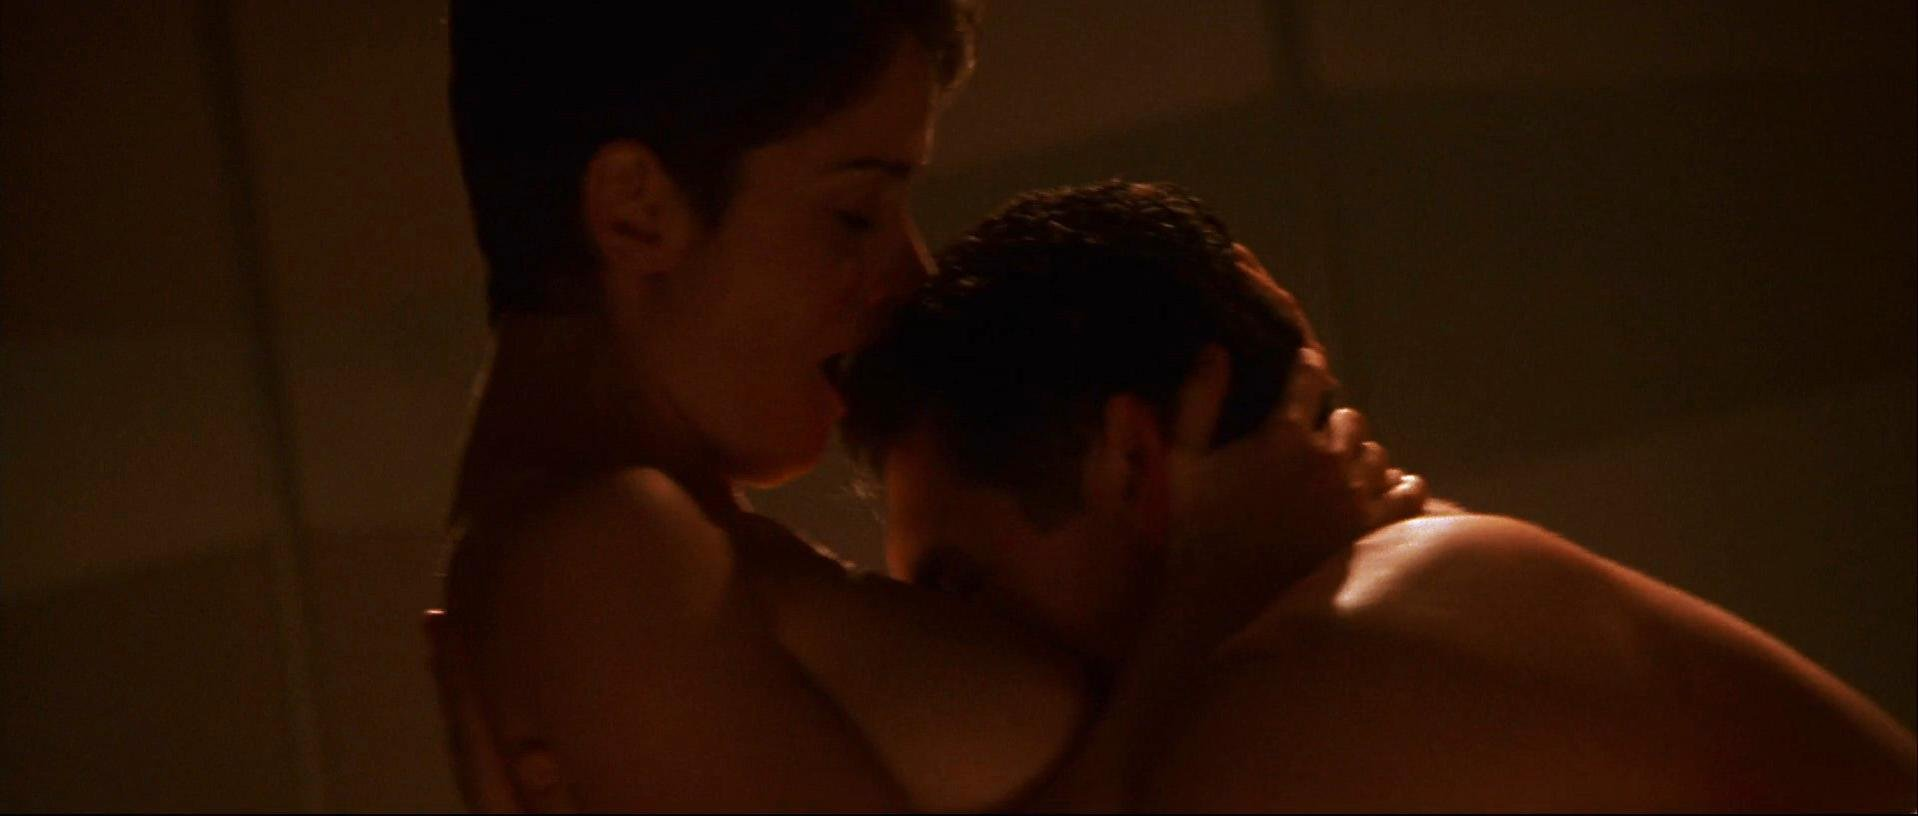 This excellent Robin tunney nude